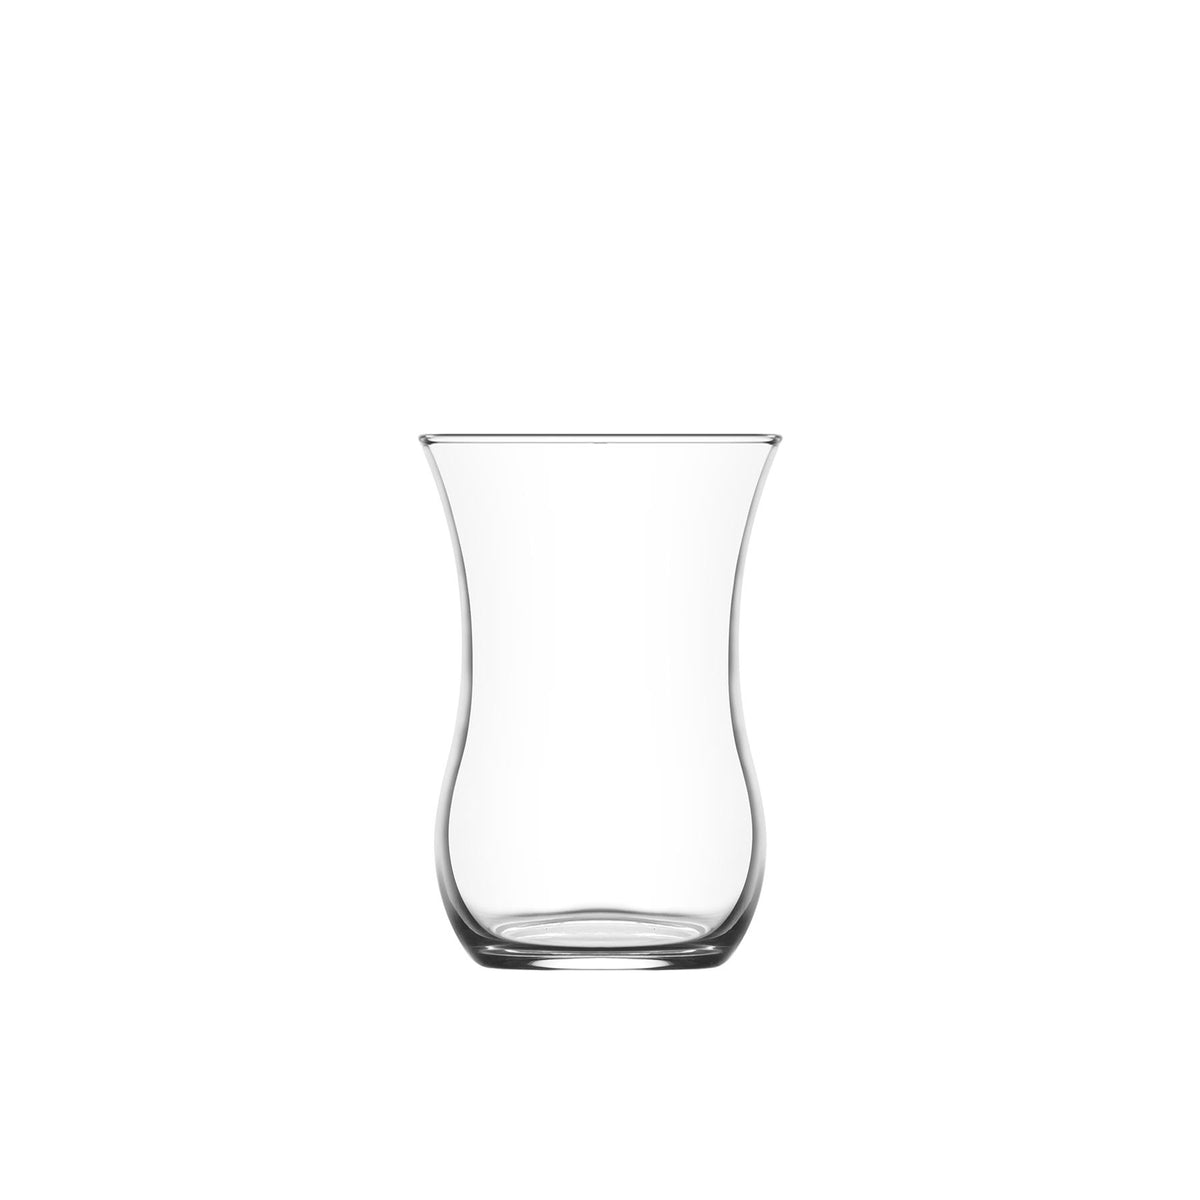 LAV Glass Tea Coffee Cups Glasses Set